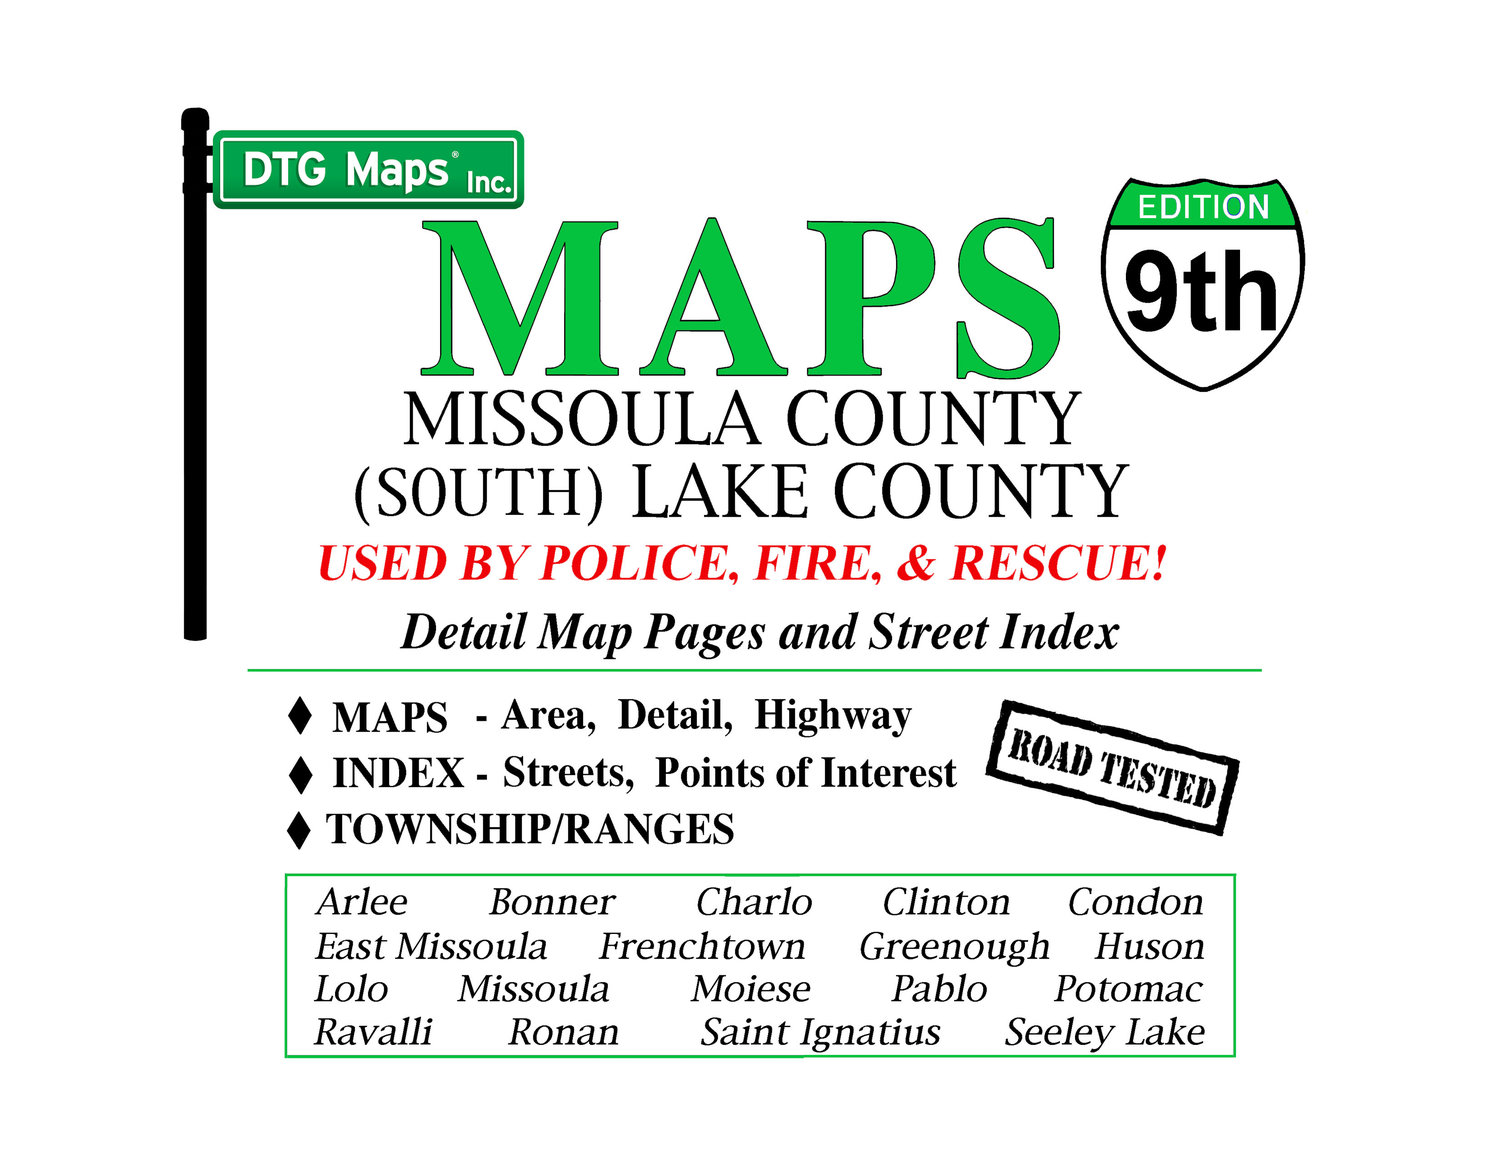 Montana missoula county clinton - Missoula County S Lake County Map Book 9th Edition